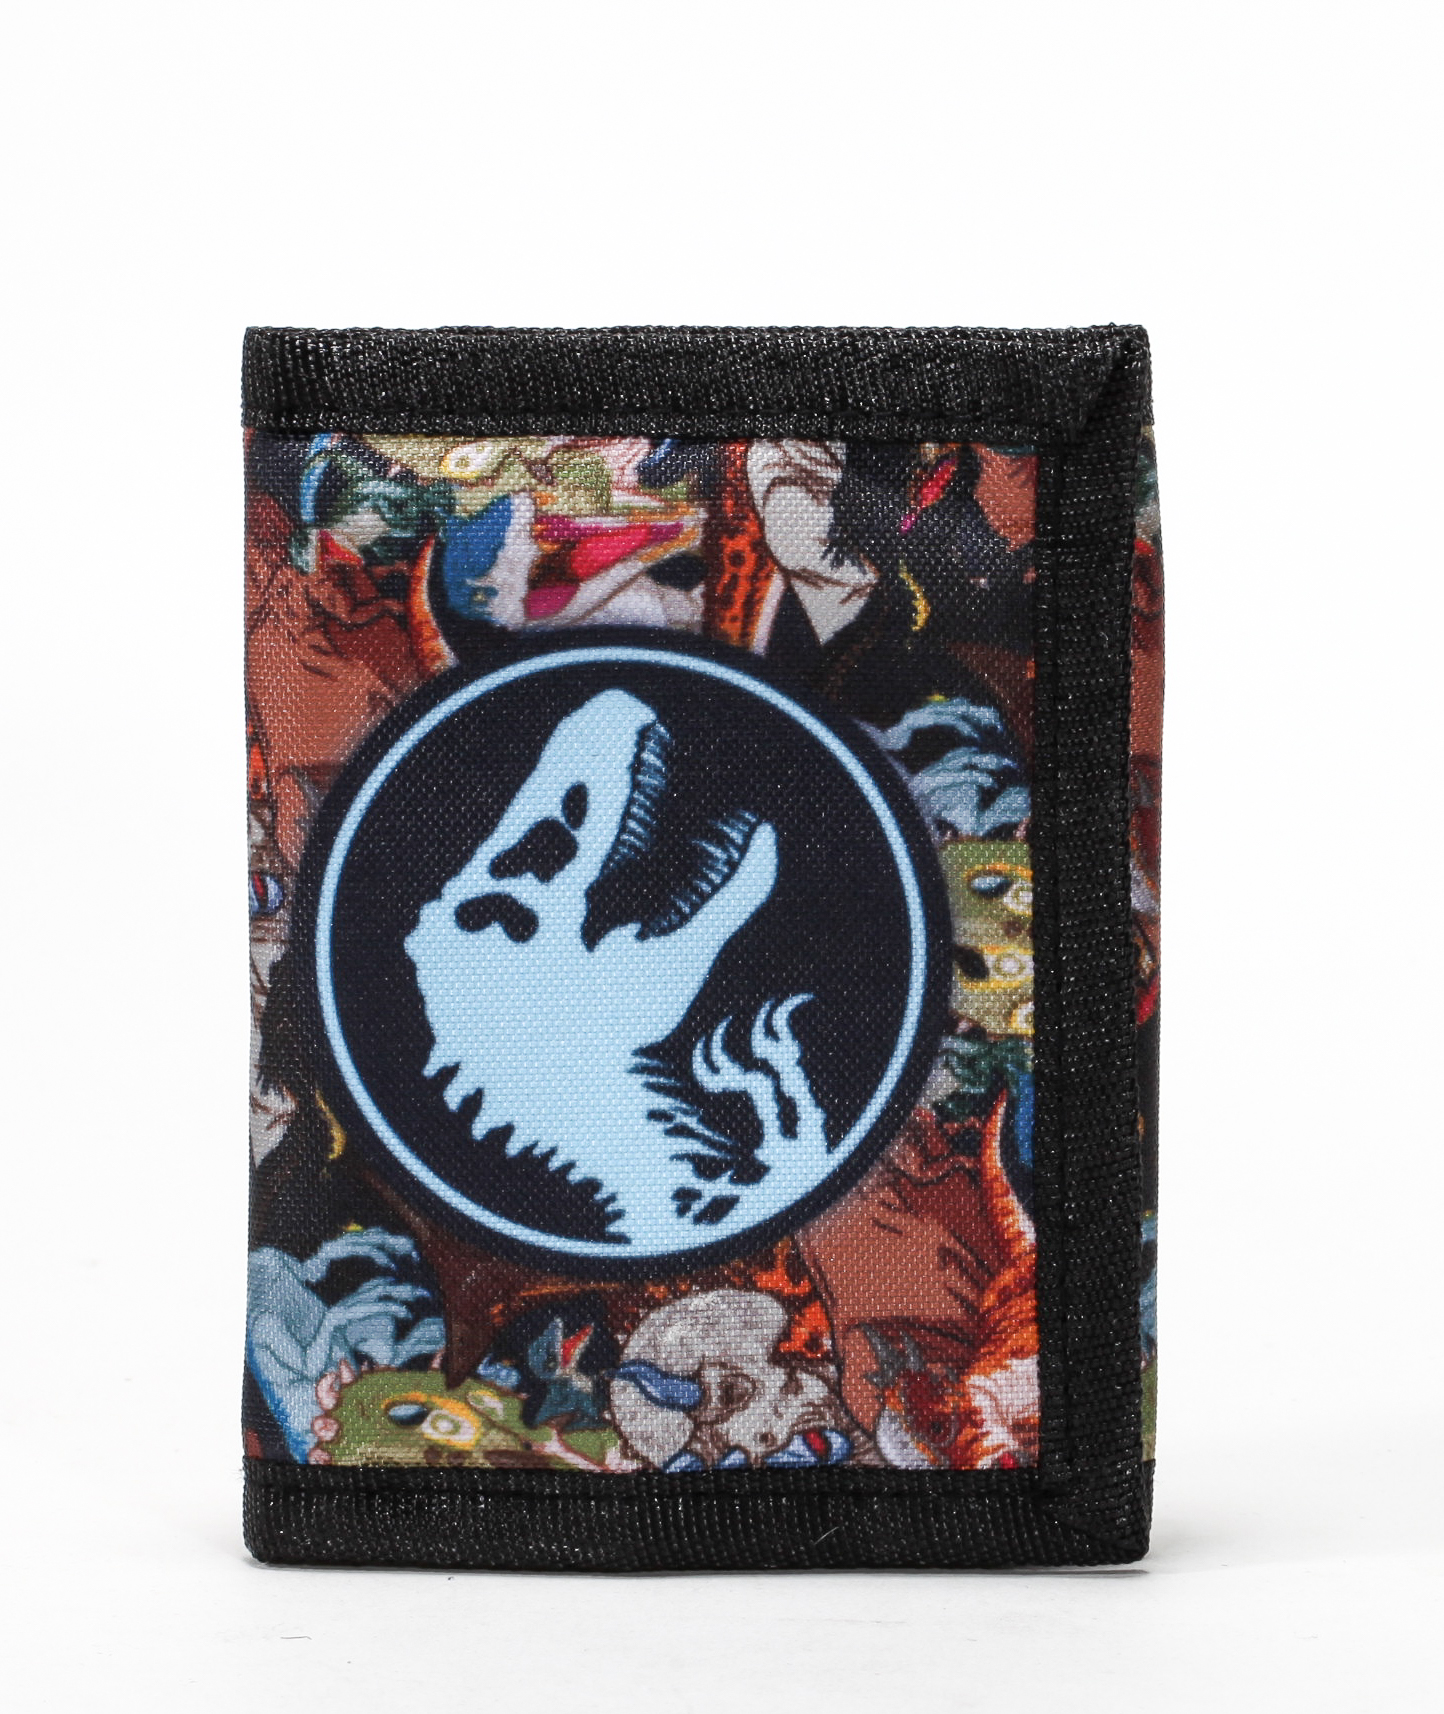 In 2021, Two Types of Wallets Printed with Dinosaur Patterns Are Exquisite And Portable